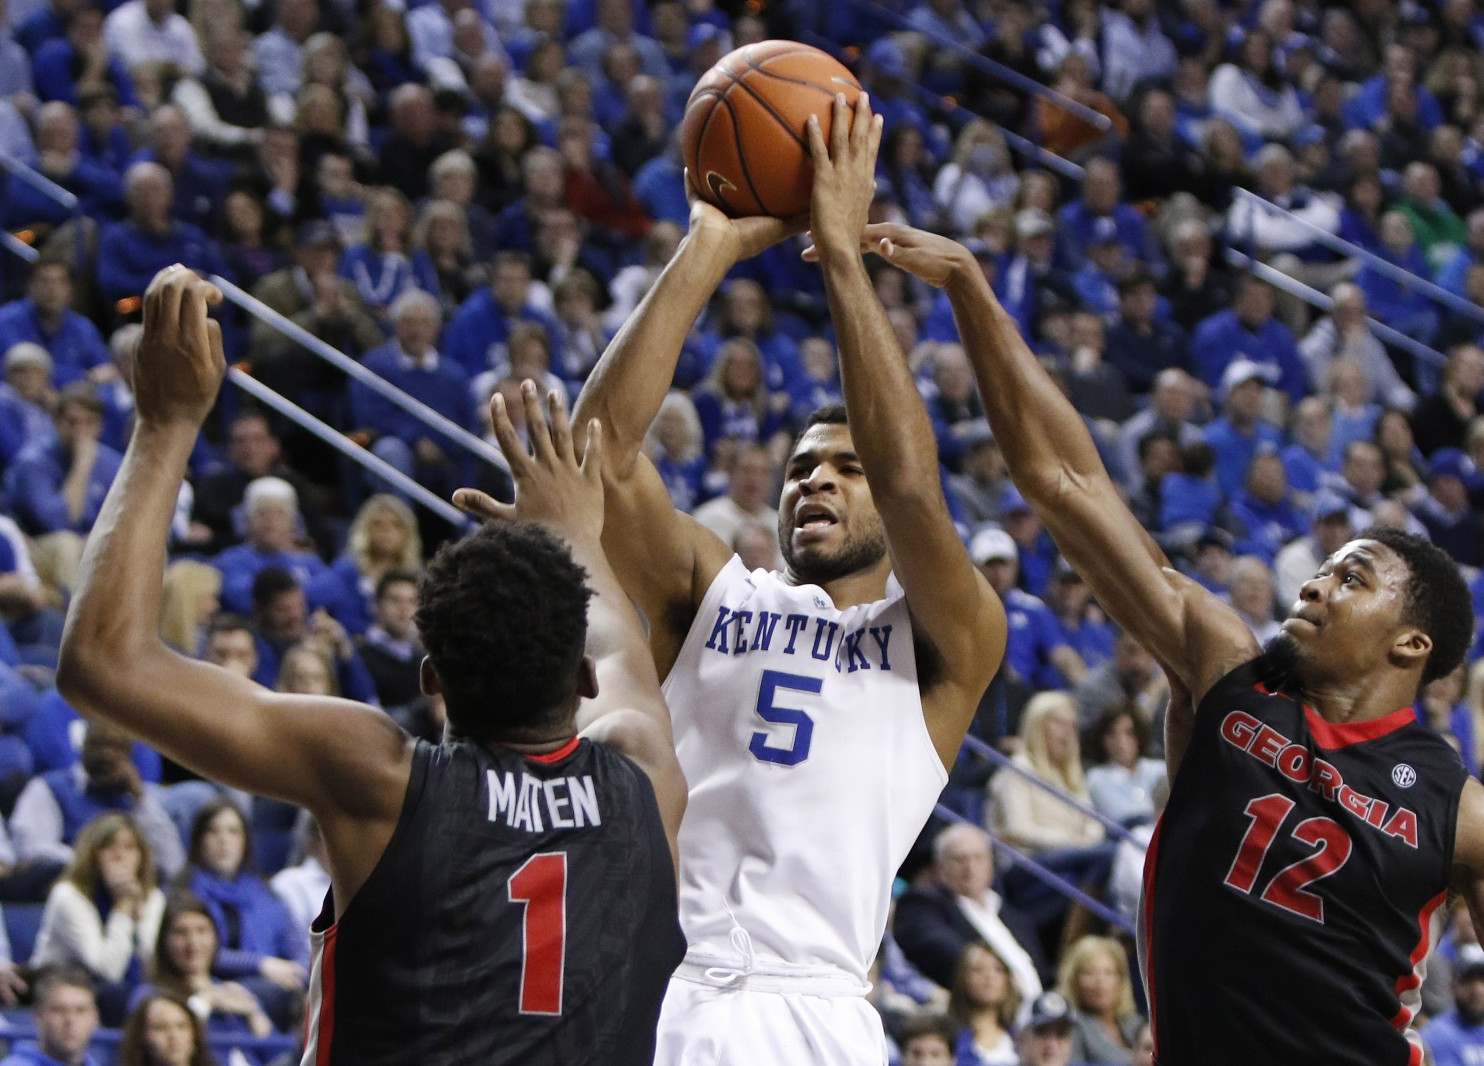 Uk Basketball: Can Kentucky Remain Undefeated?